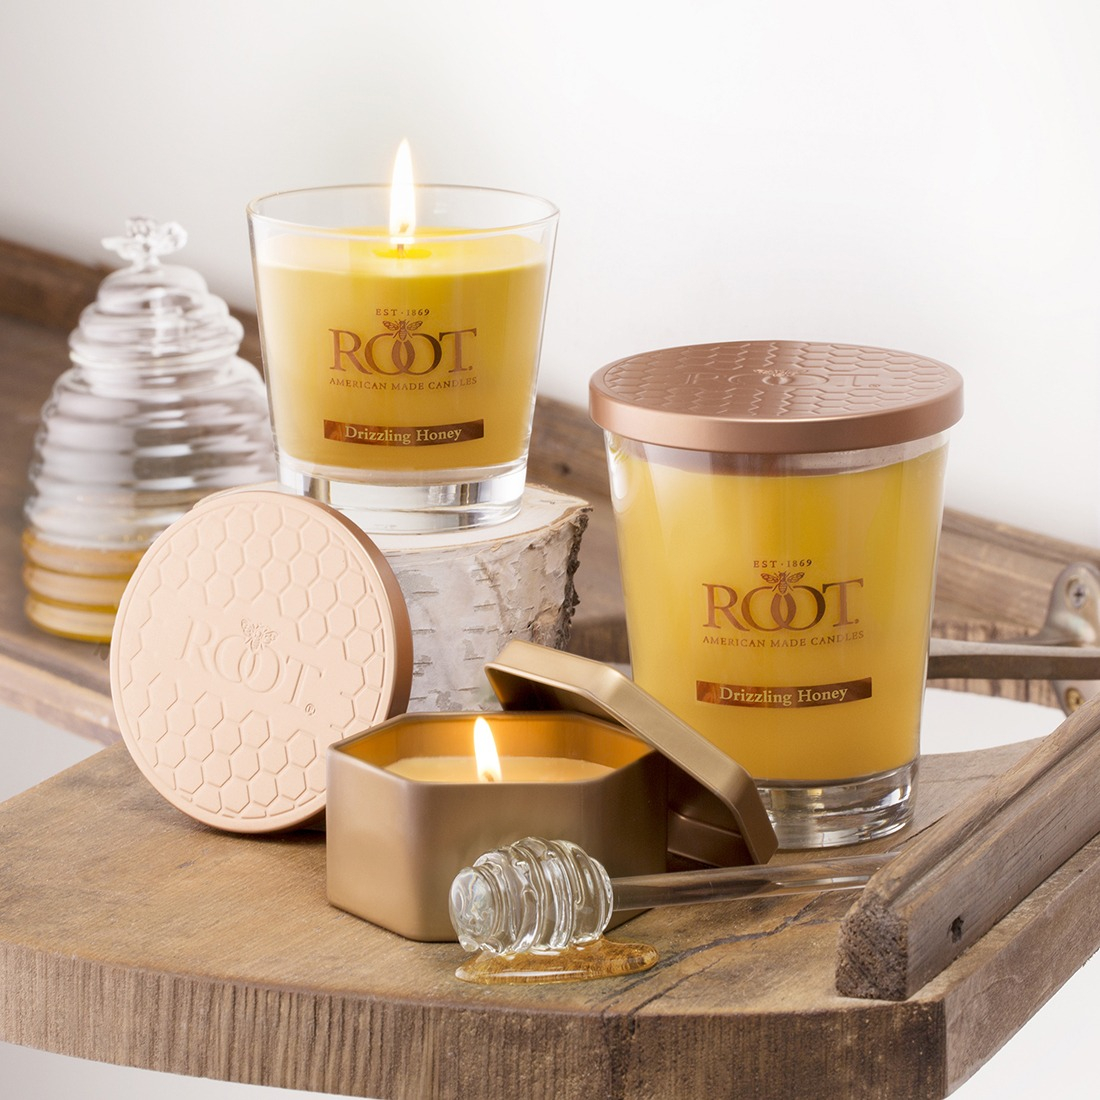 Custom Candle Labels for Root Candles